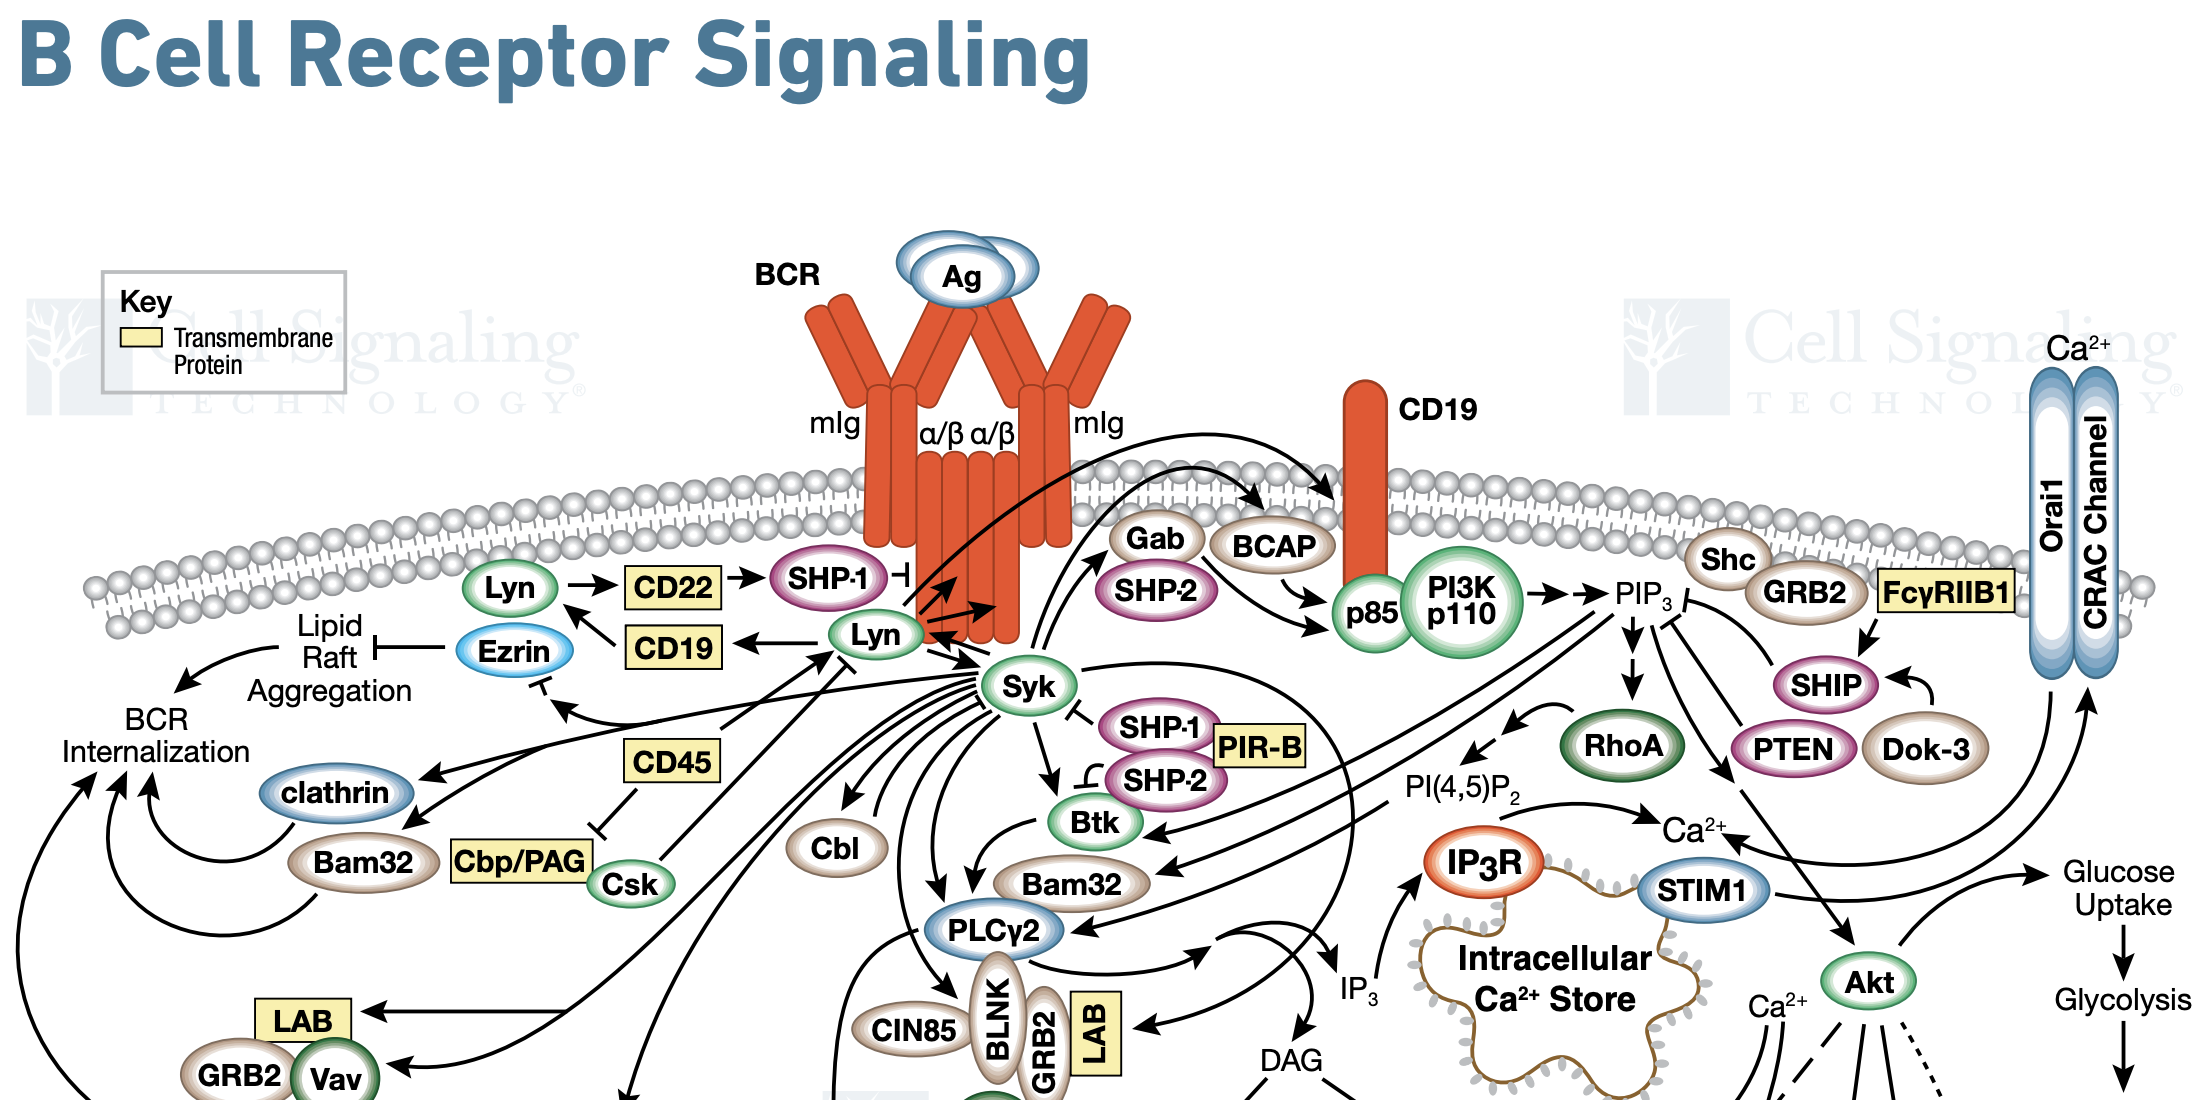 B Cell Receptor Signaling Diagram